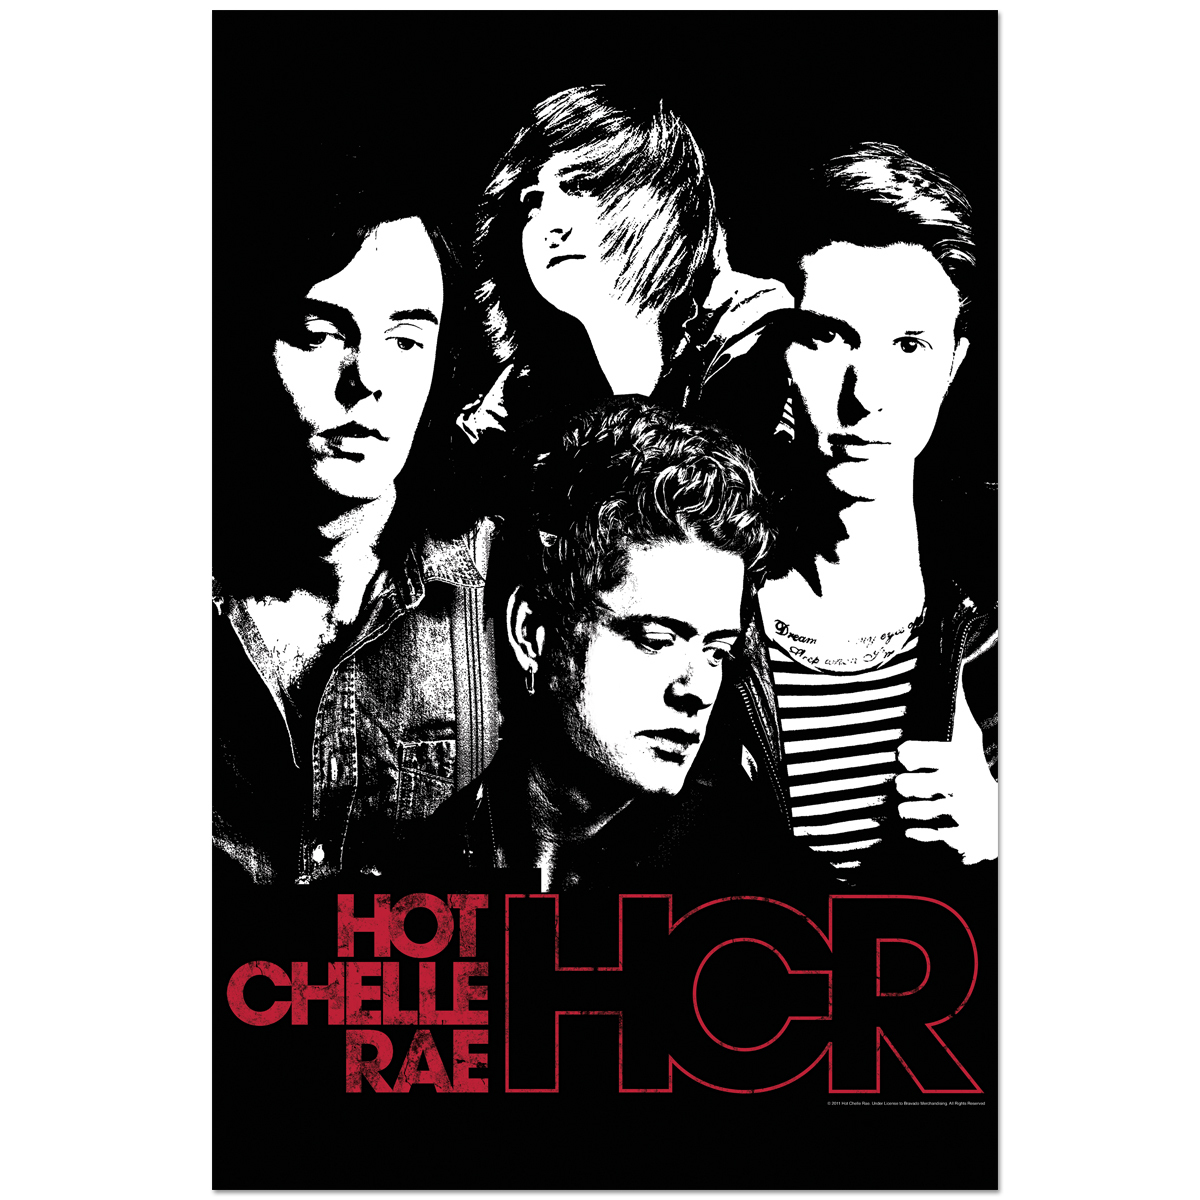 Hot Chelle Rae Photo Poster